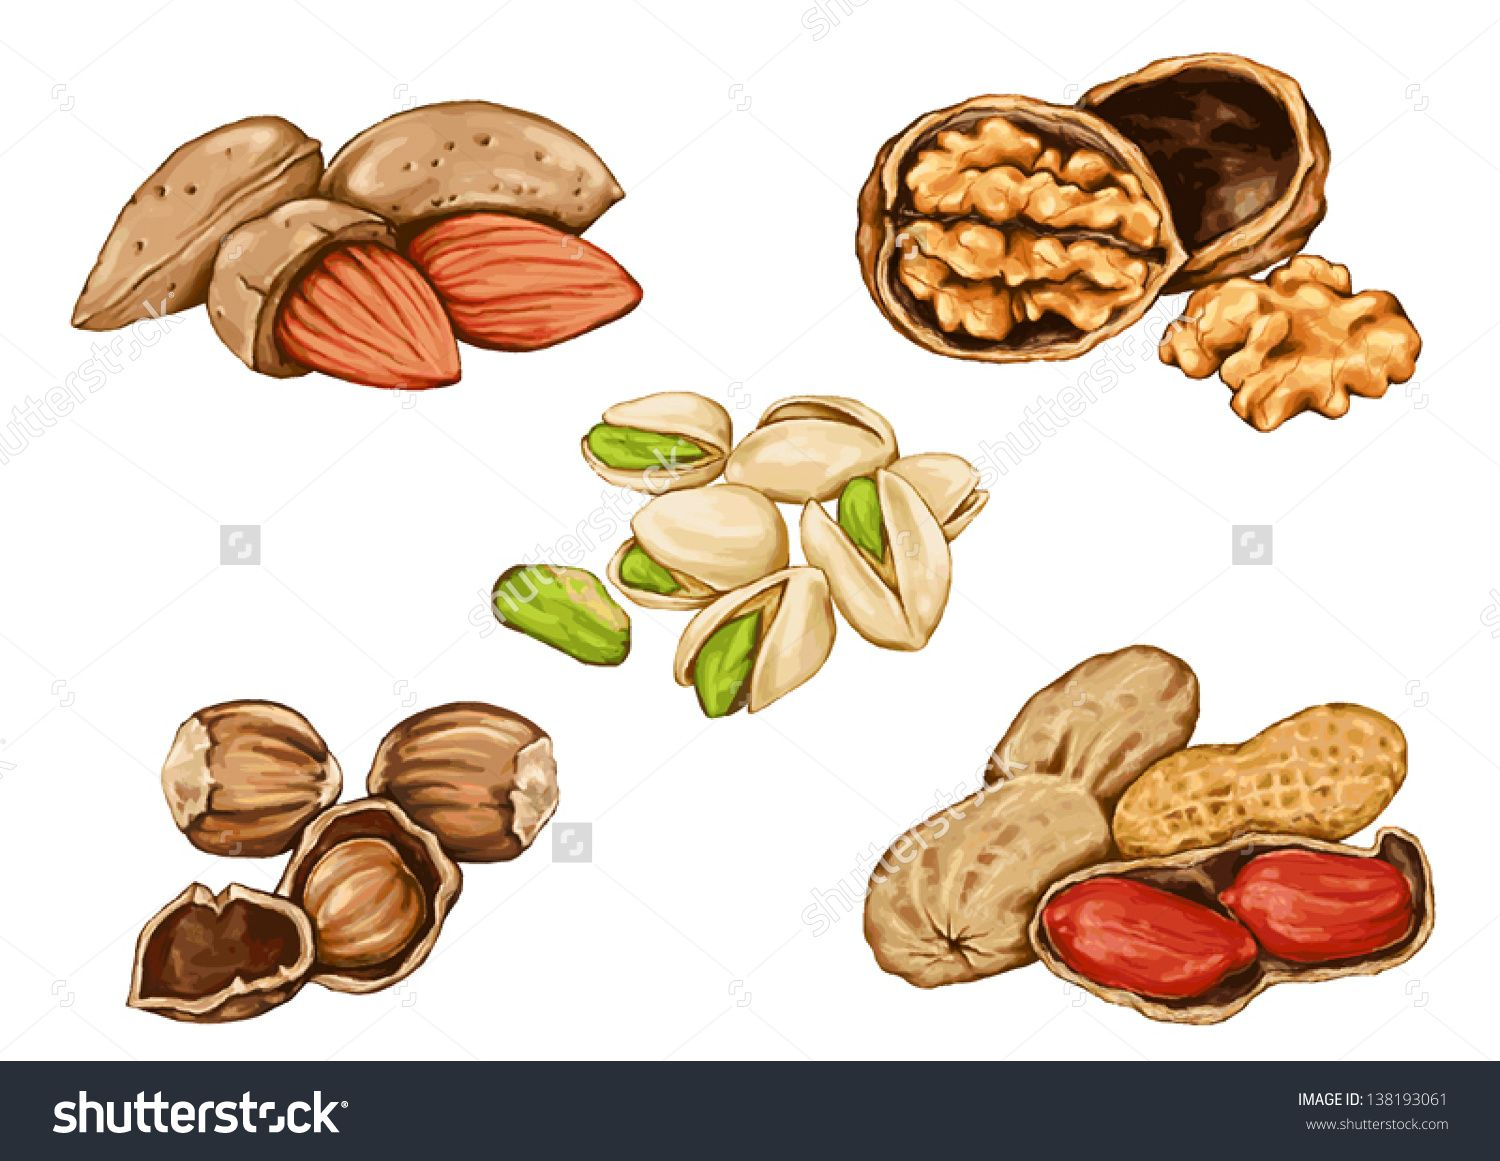 drawing of peanuts and nuts, edible seeds of the tree, used in ...